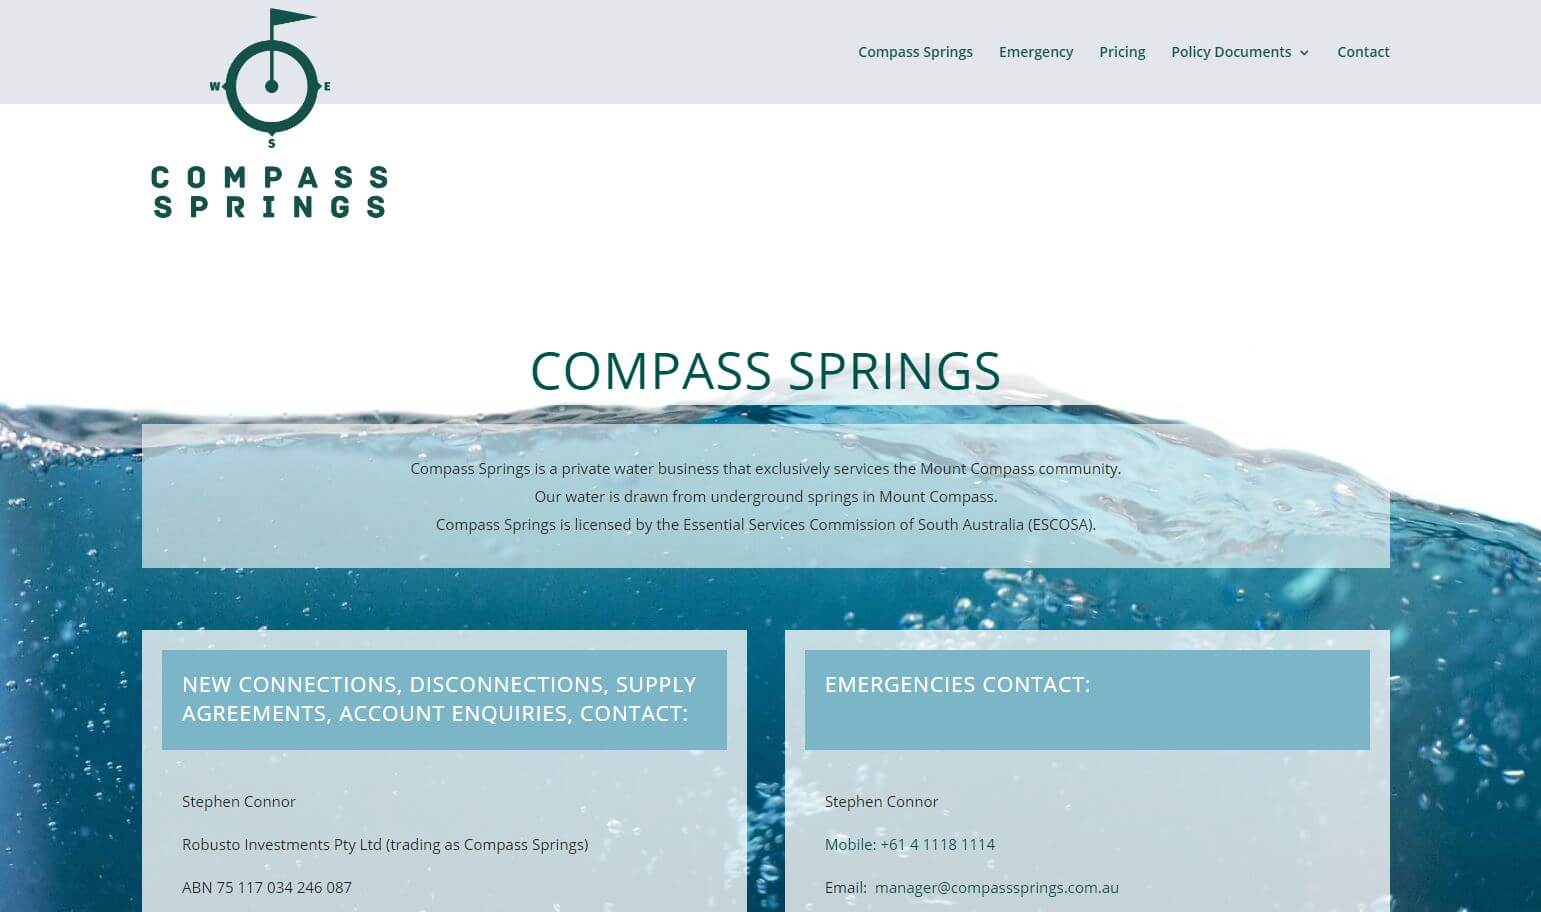 website for compass springs south australia